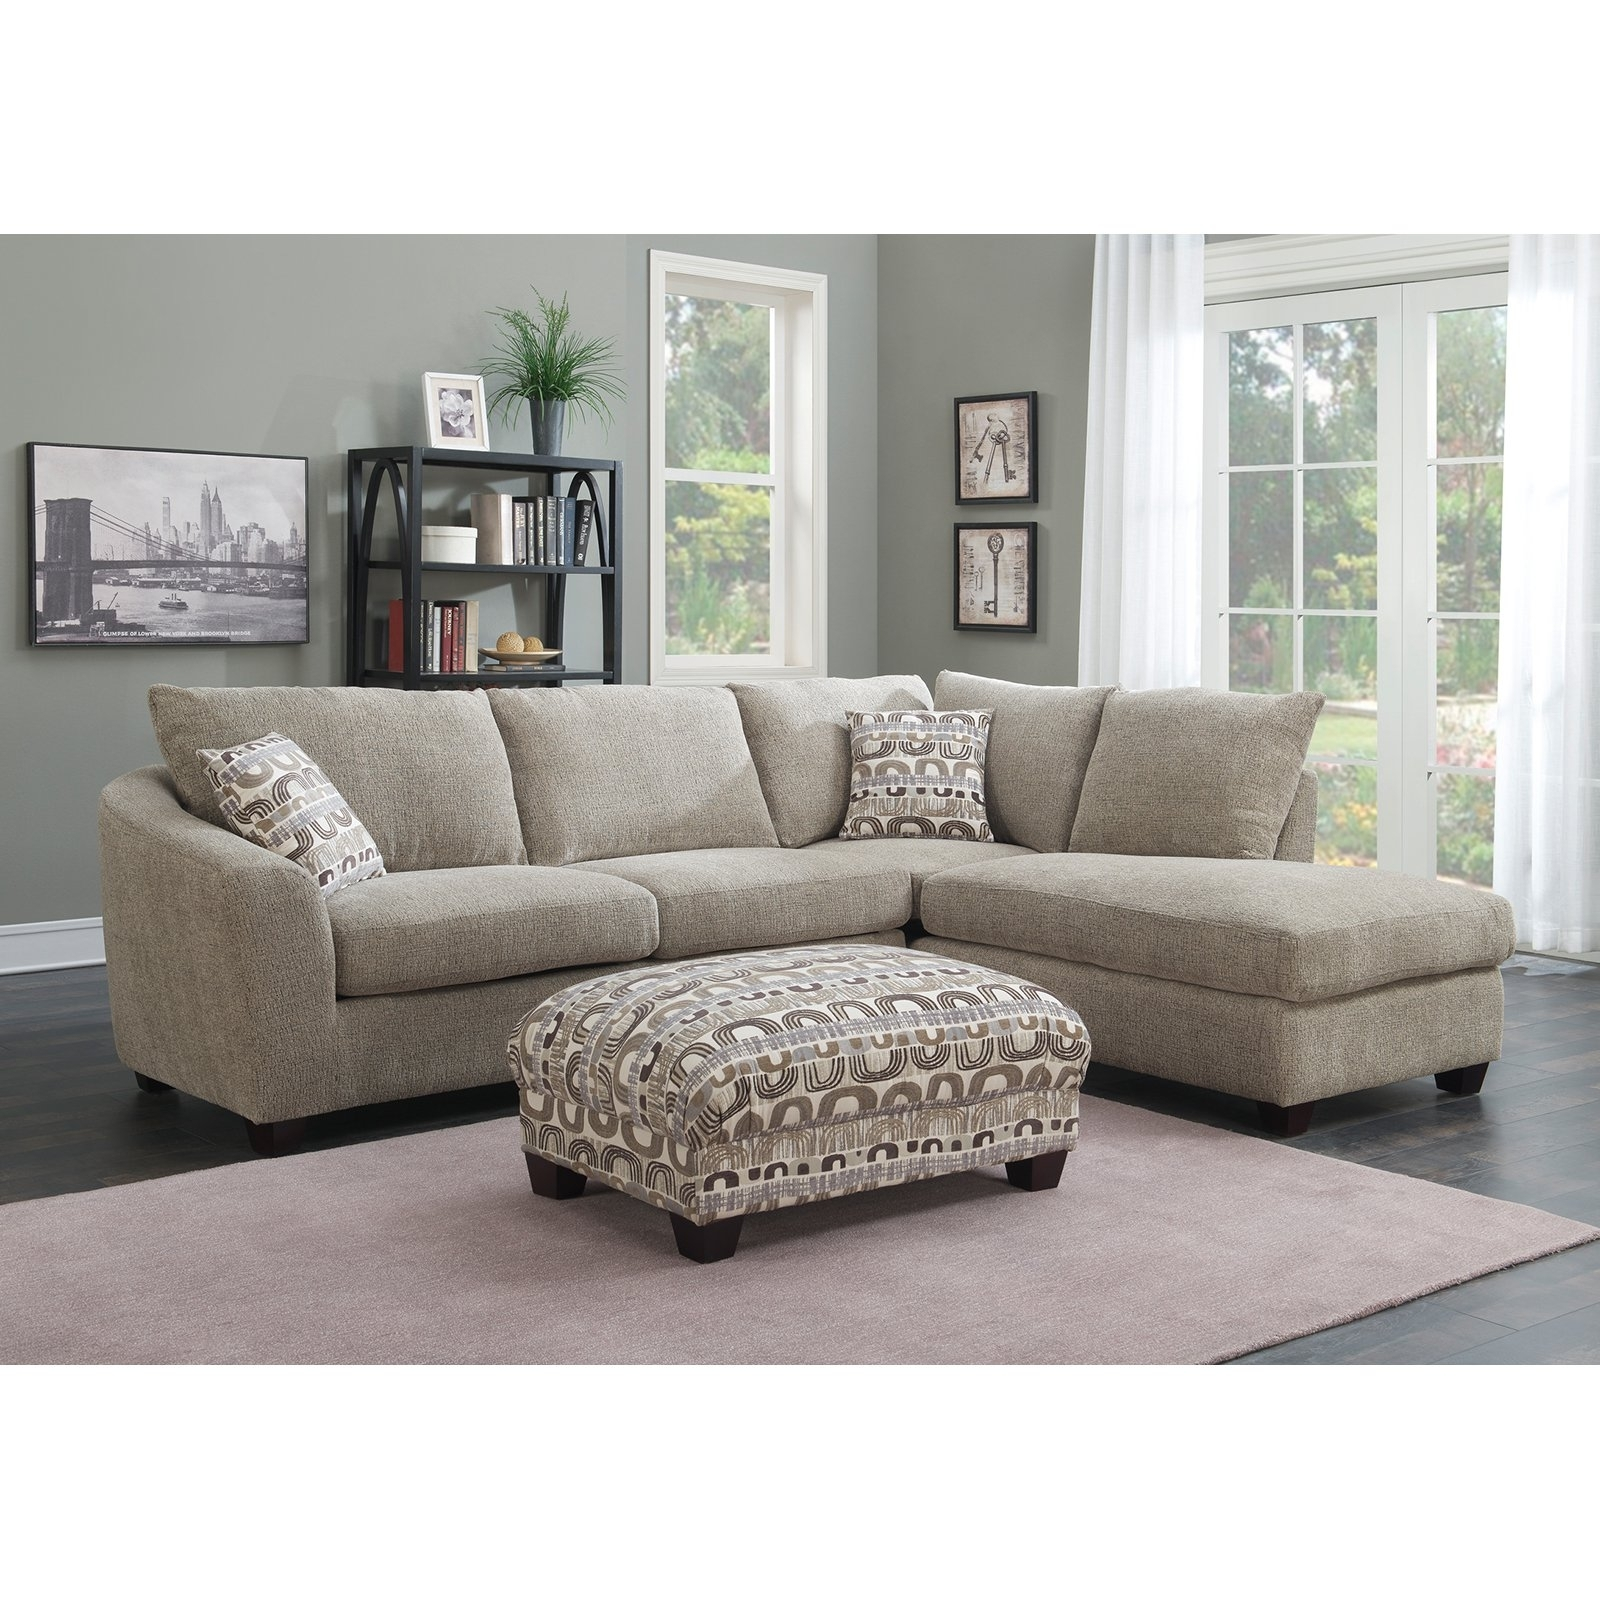 Emerald Home Urbana Piece Sectional Sofa With Chaise Couch Double With Regard To Kerri 2 Piece Sectionals With Raf Chaise (Image 8 of 25)